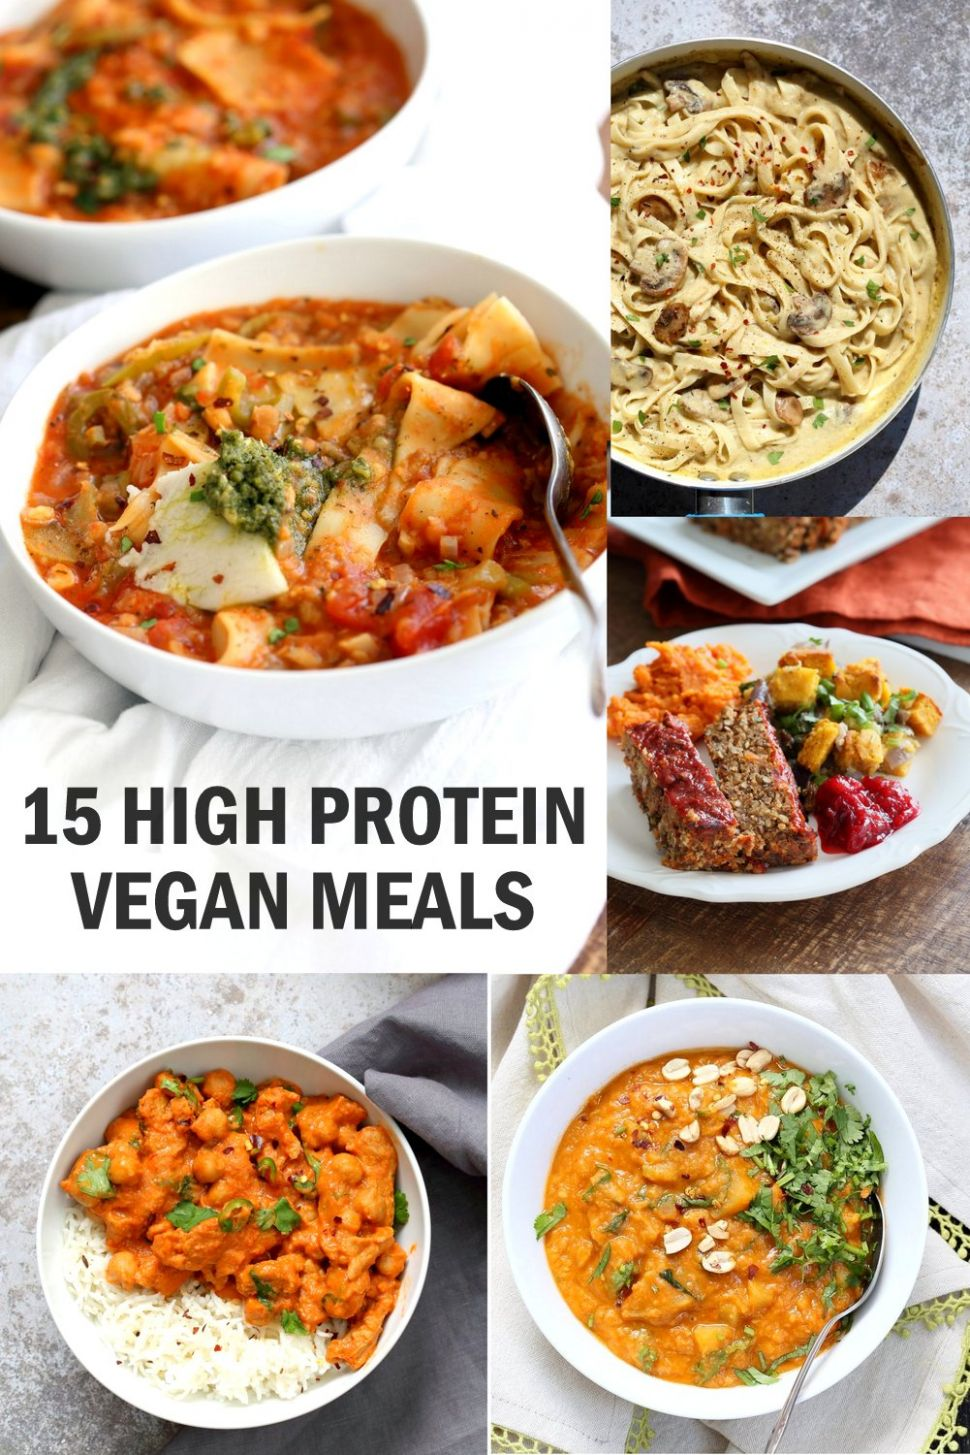 11 High Protein Vegan Meals - Vegan Richa - Recipes Vegetable Protein